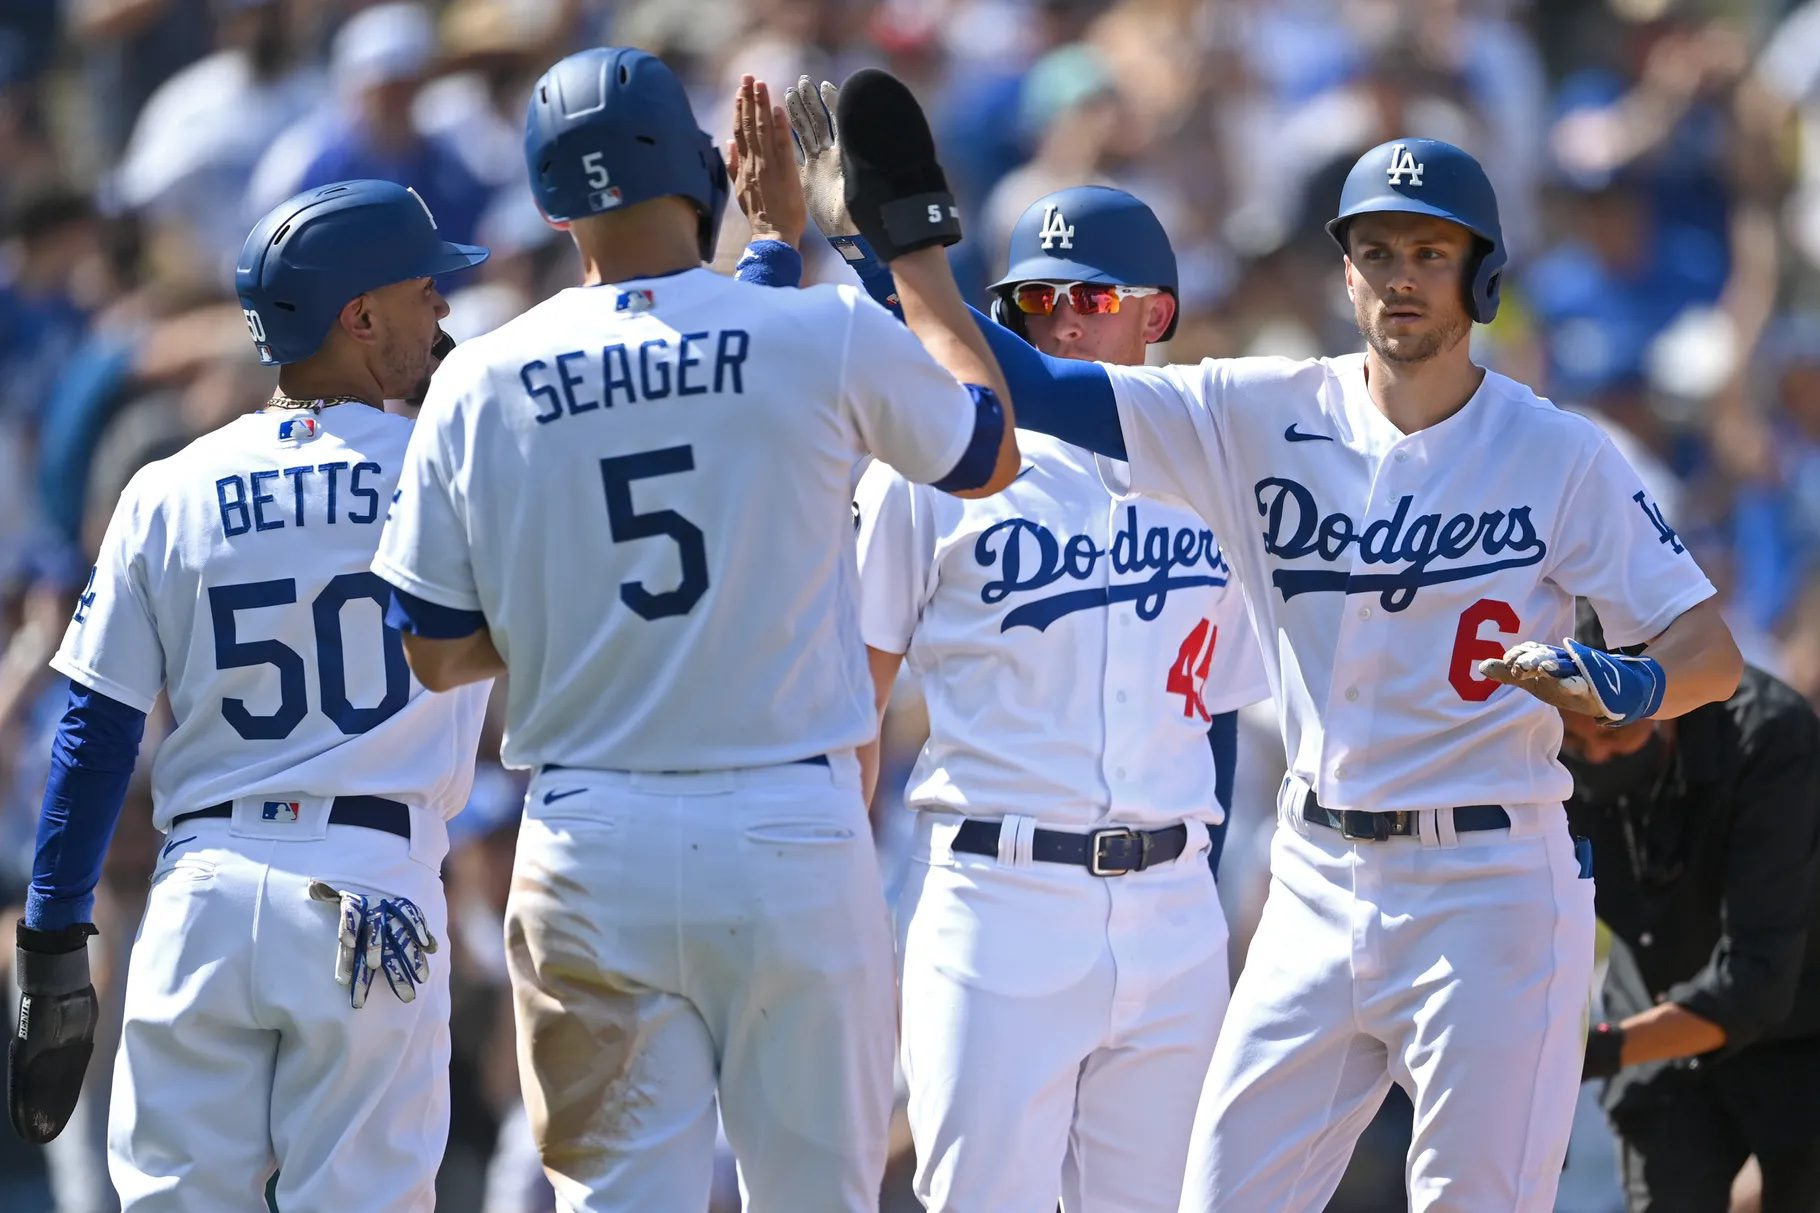 Dodgers vs Brewers